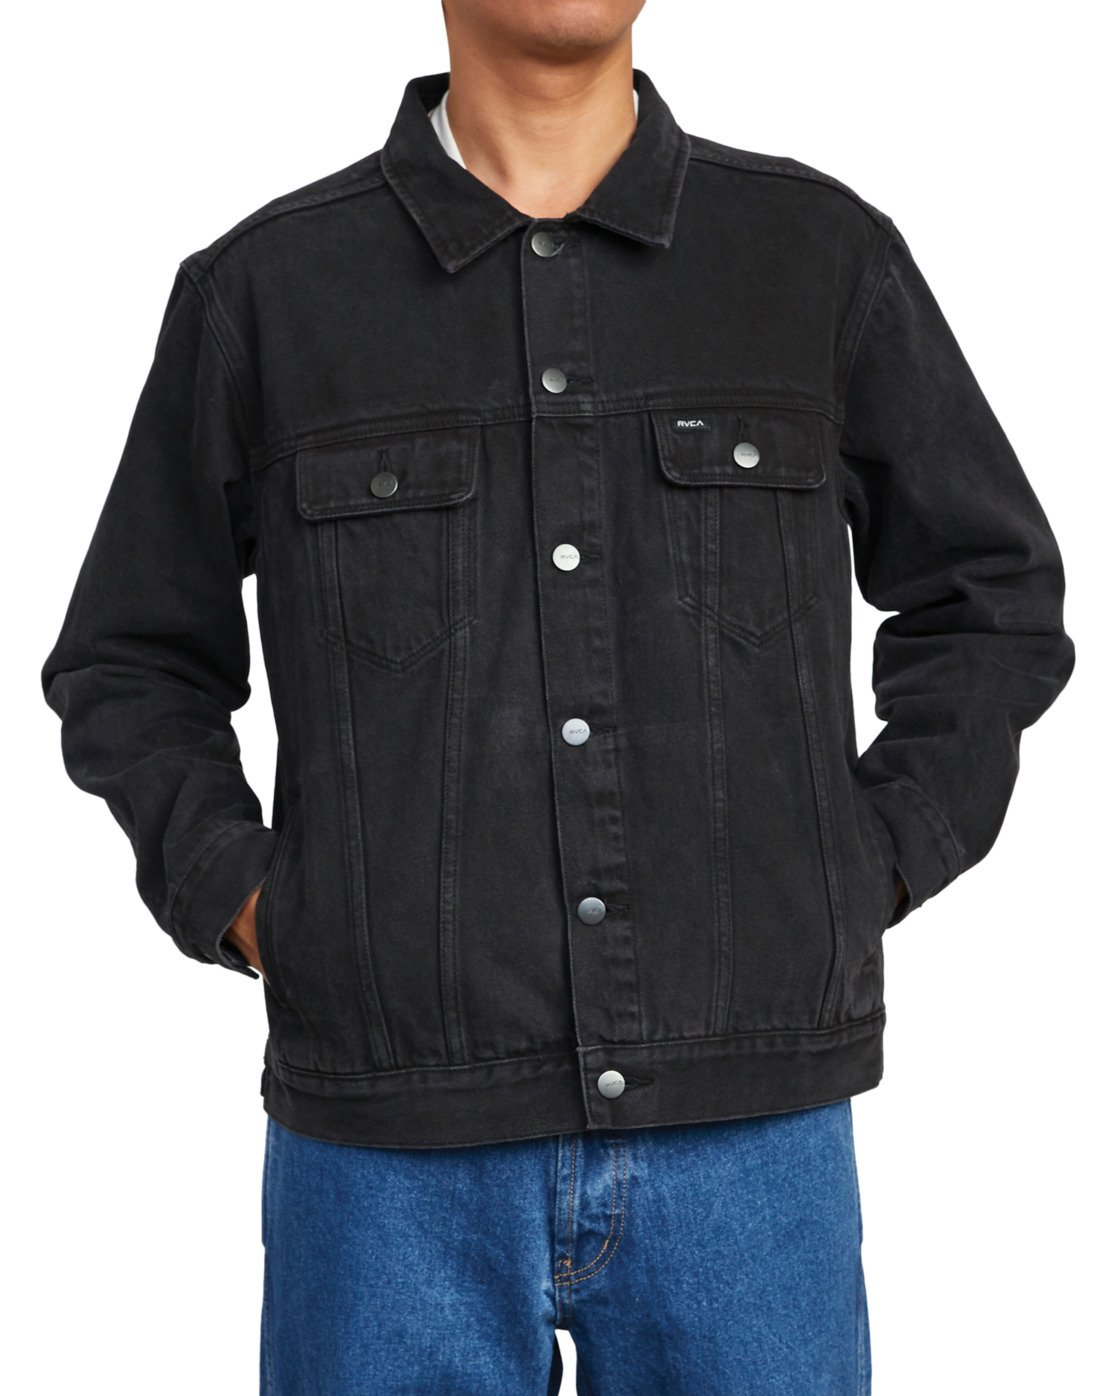 6 AMERICANA DENIM JACKET Black M7303RDJ RVCA